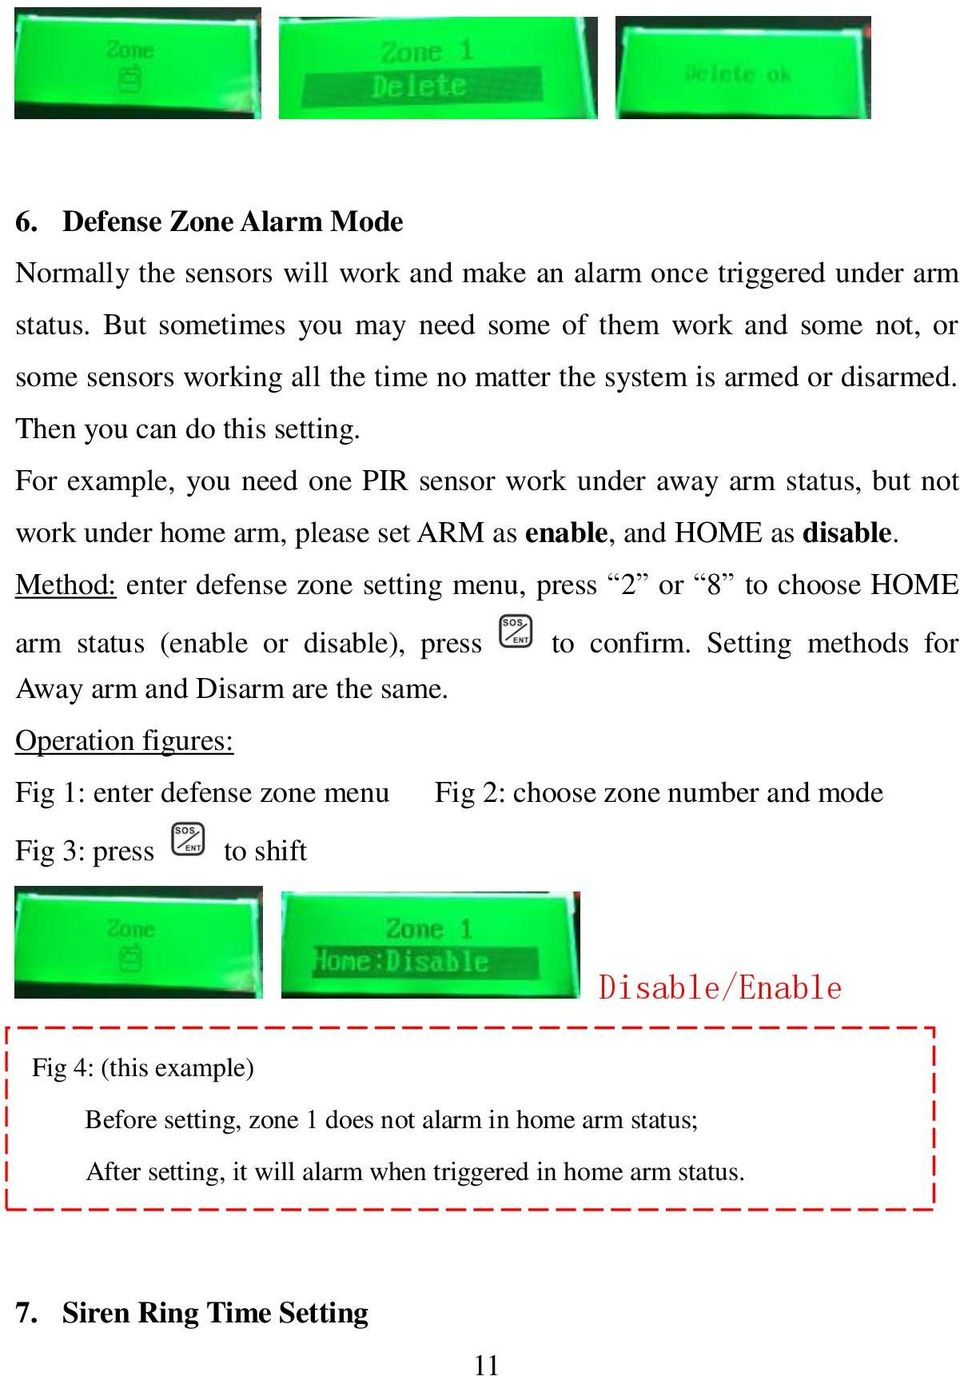 For example, you need one PIR sensor work under away arm status, but not work under home arm, please set ARM as enable, and HOME as disable.